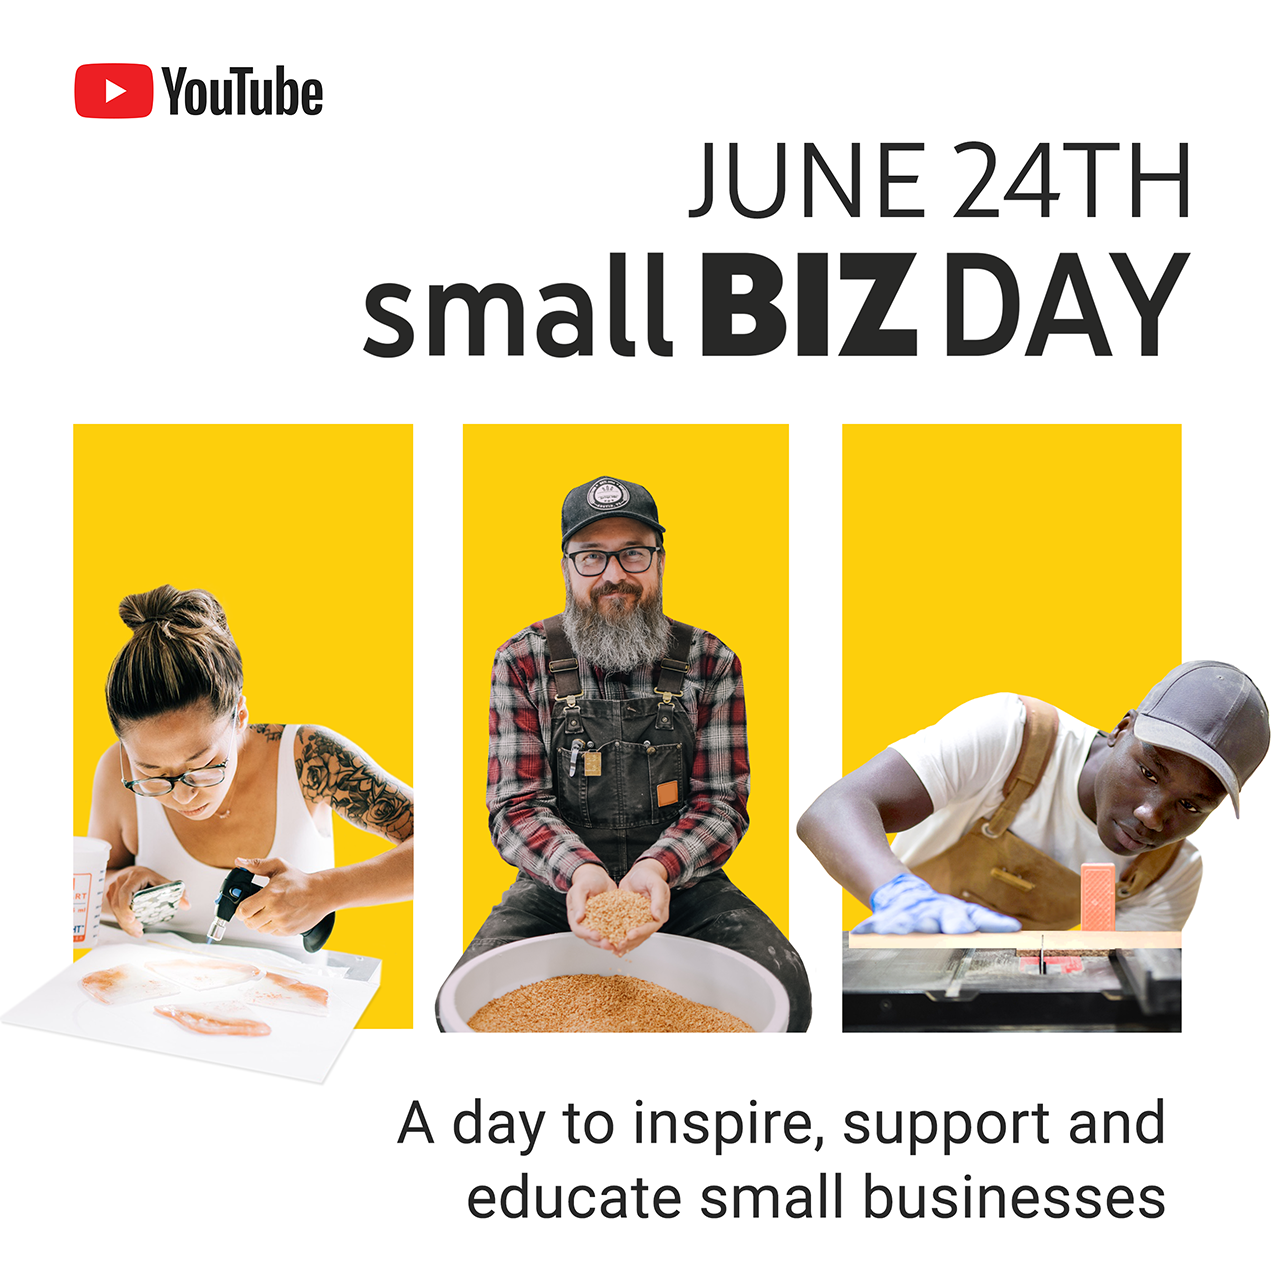 First-ever YouTube Small Biz Day on June 24